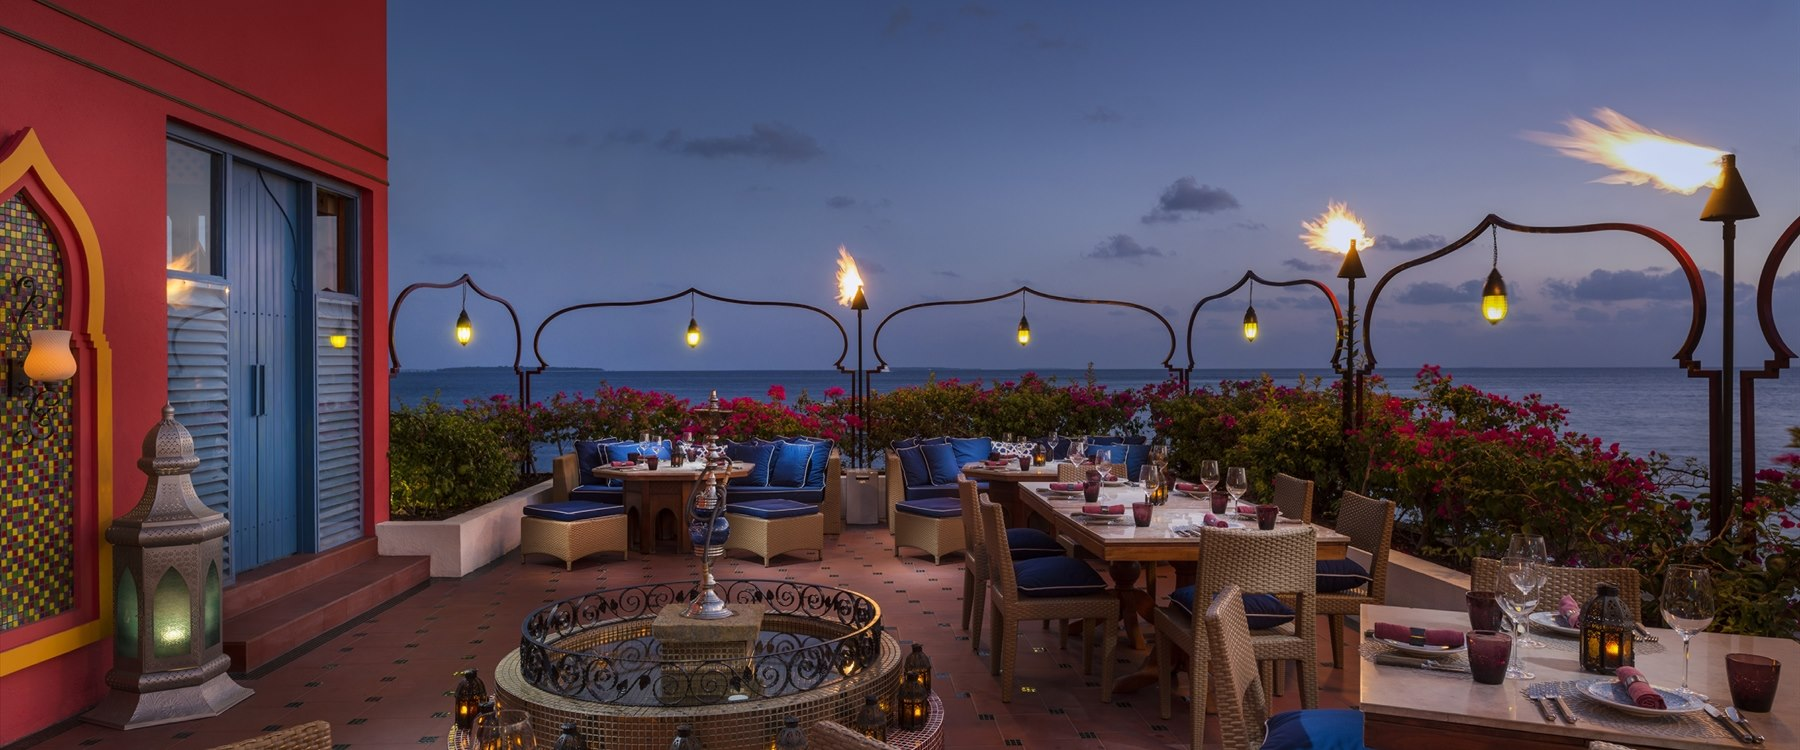 Al Barakat Restaurant at Four Seasons Resort Maldives at Landaa Giraavaru